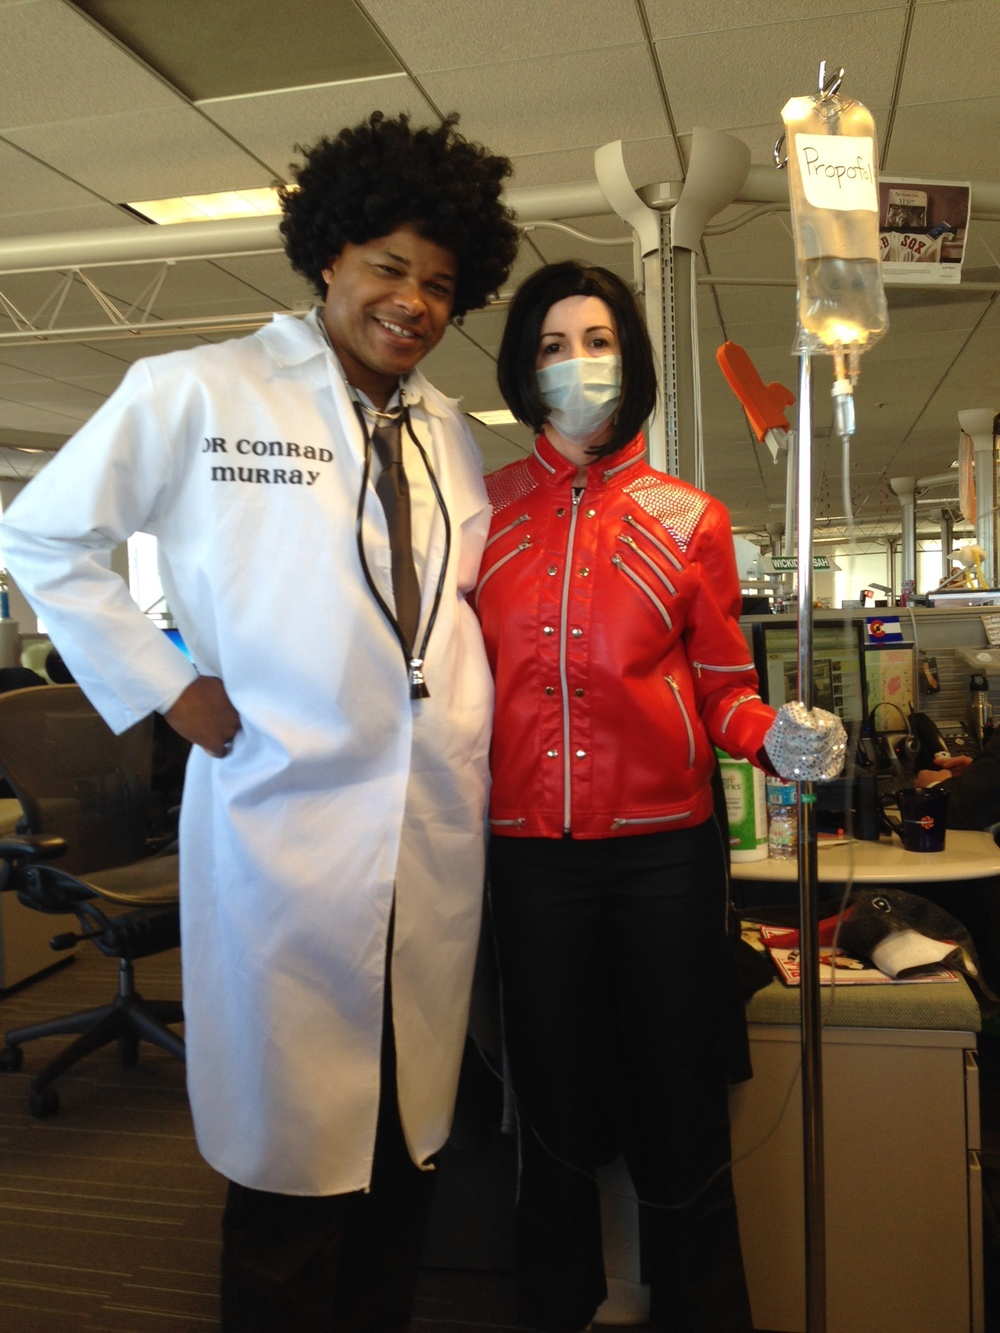 Vicky Pradhan tops off her thrilling Michael Jackson costume with an IV drip of propofol and blackout contacts!